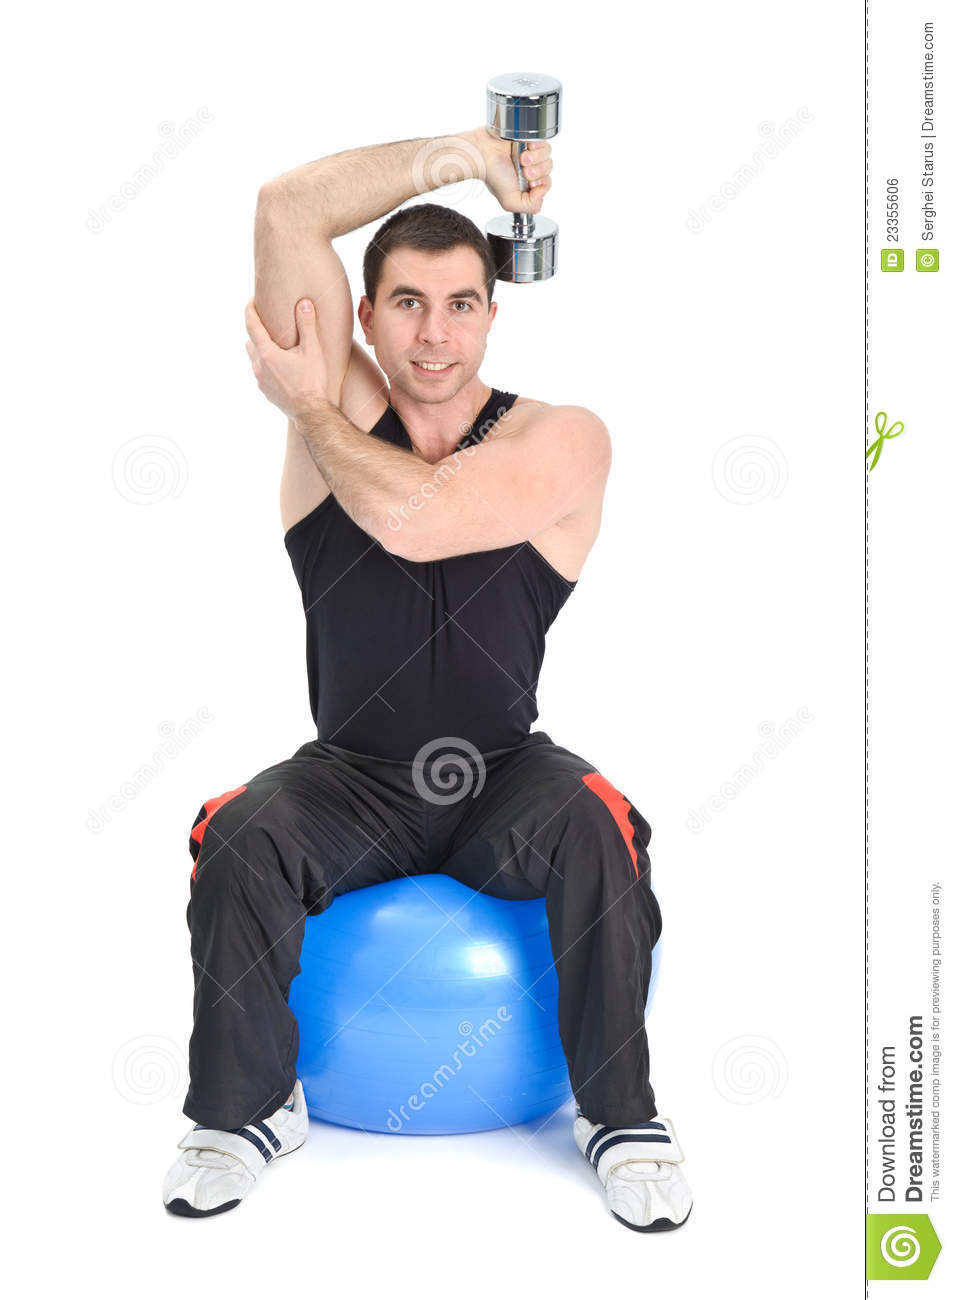 Seated Dumbbell One Arm Triceps Extensions Stock Photo ...